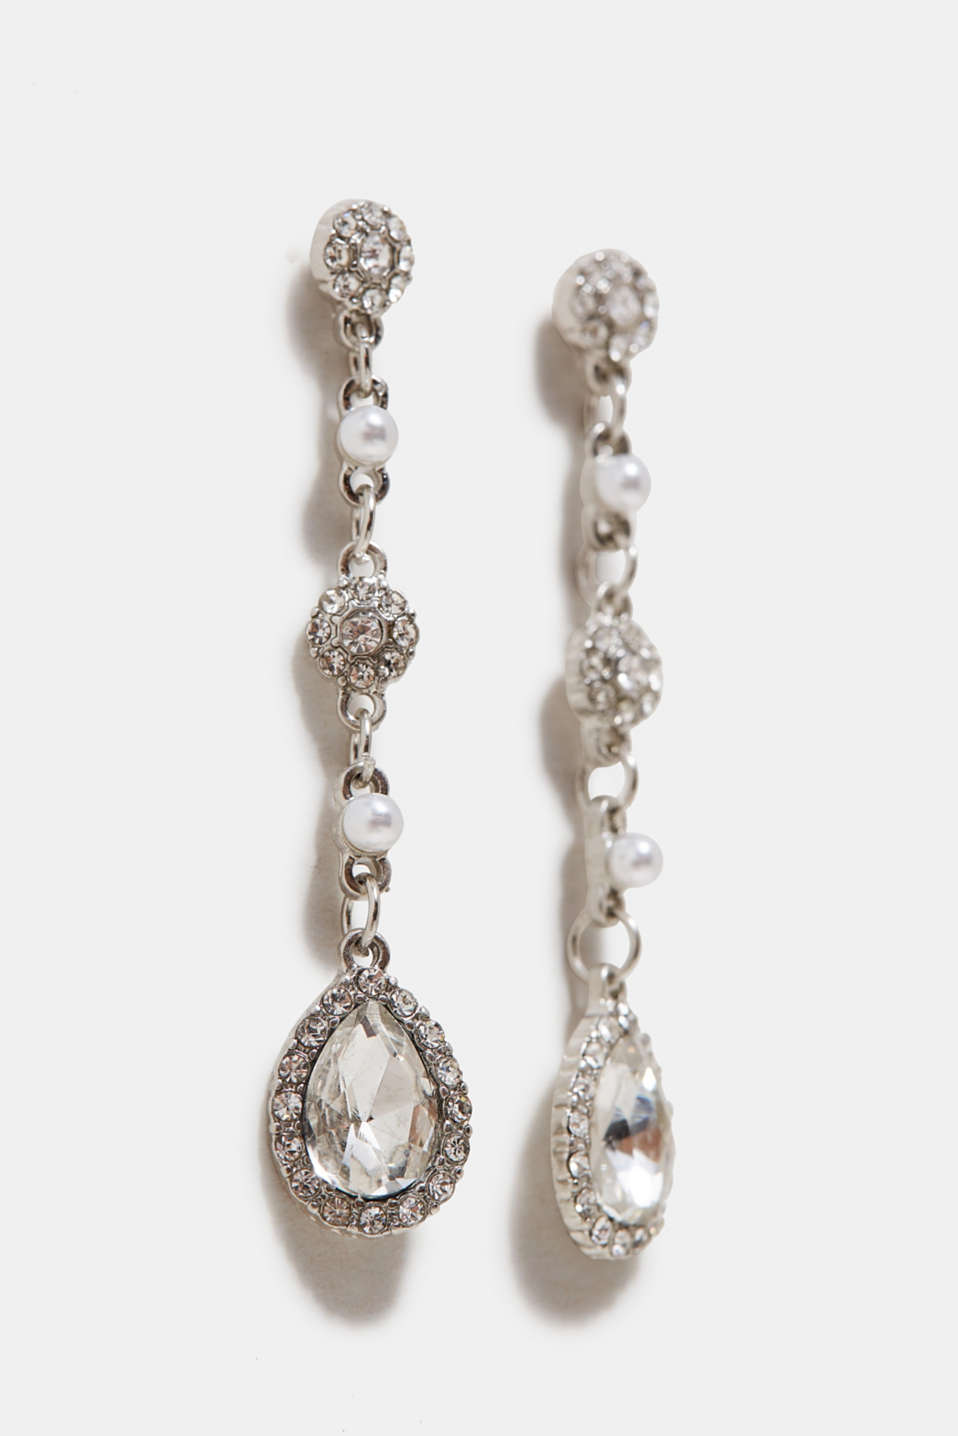 Earrings with sparkling facet-cut stones